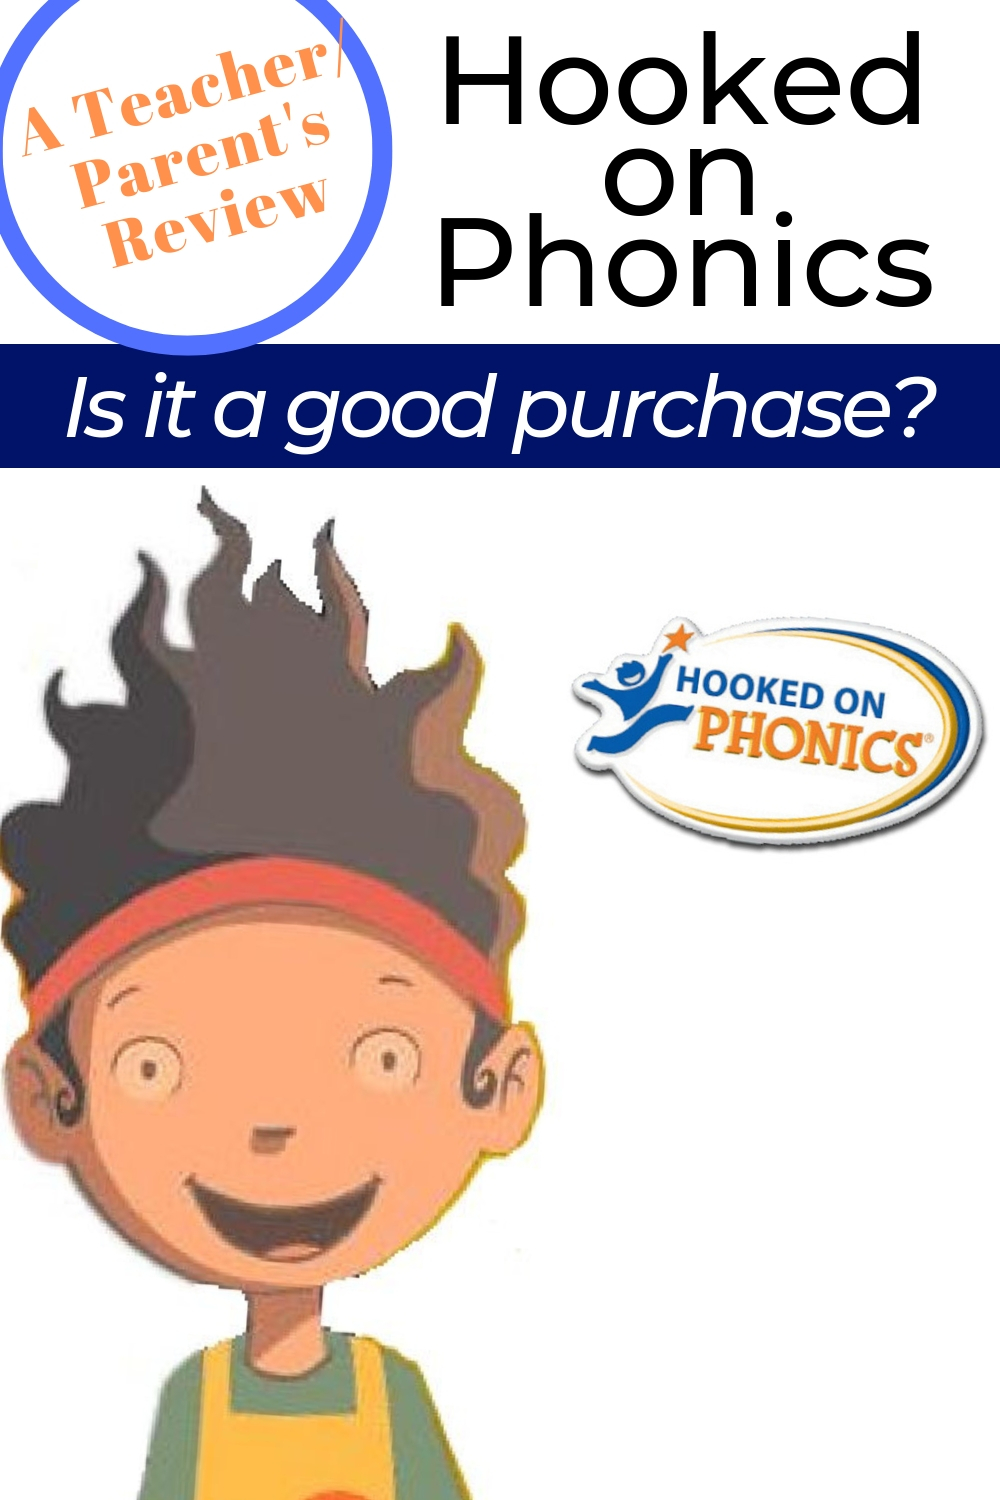 Hooked on Phonics Reviews (2)